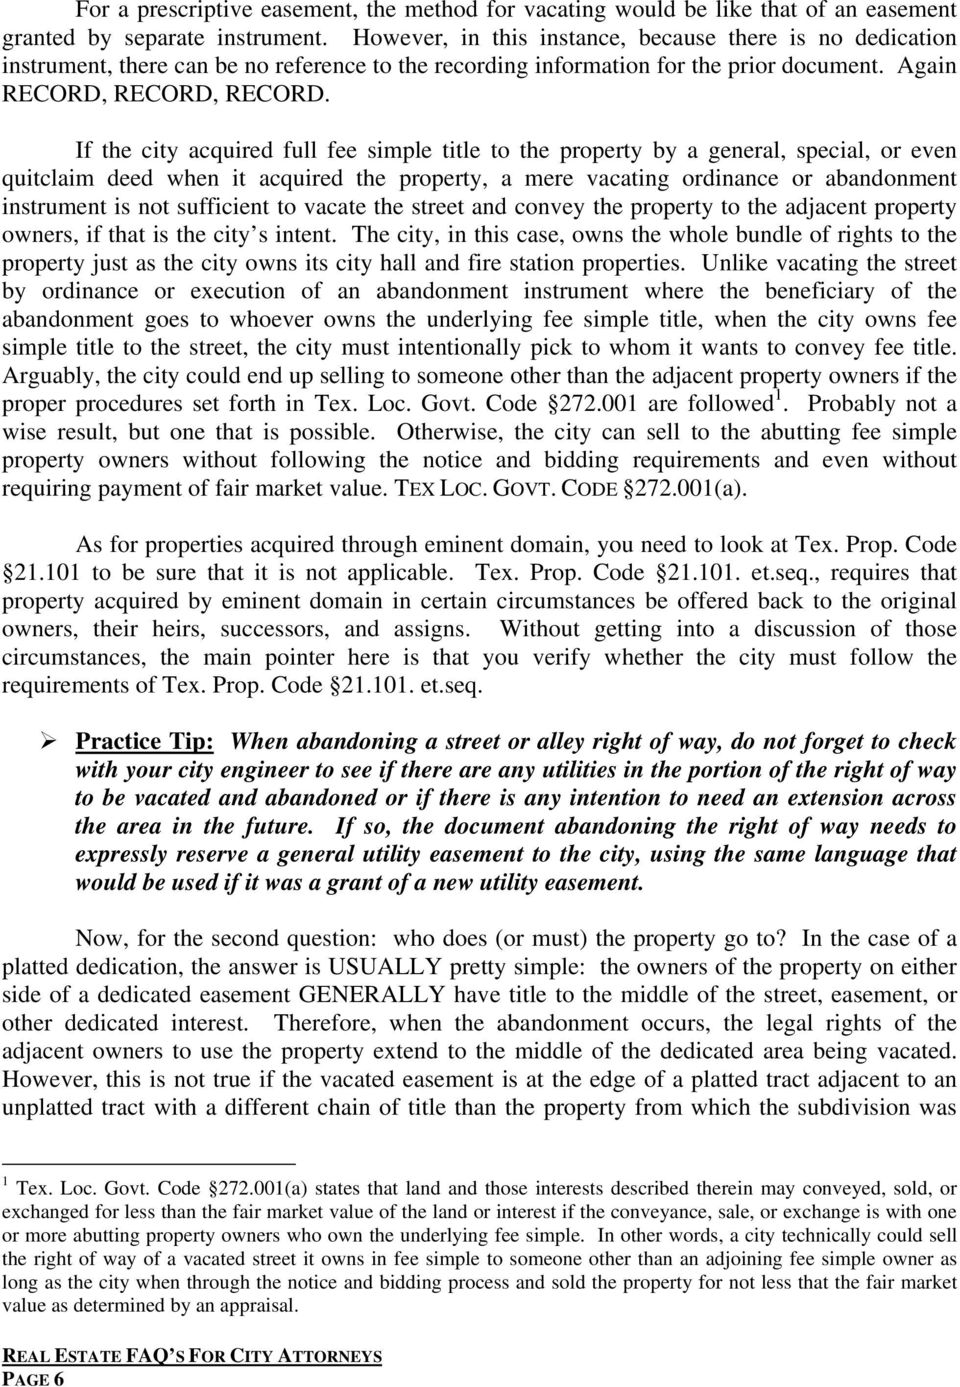 If the city acquired full fee simple title to the property by a general, special, or even quitclaim deed when it acquired the property, a mere vacating ordinance or abandonment instrument is not